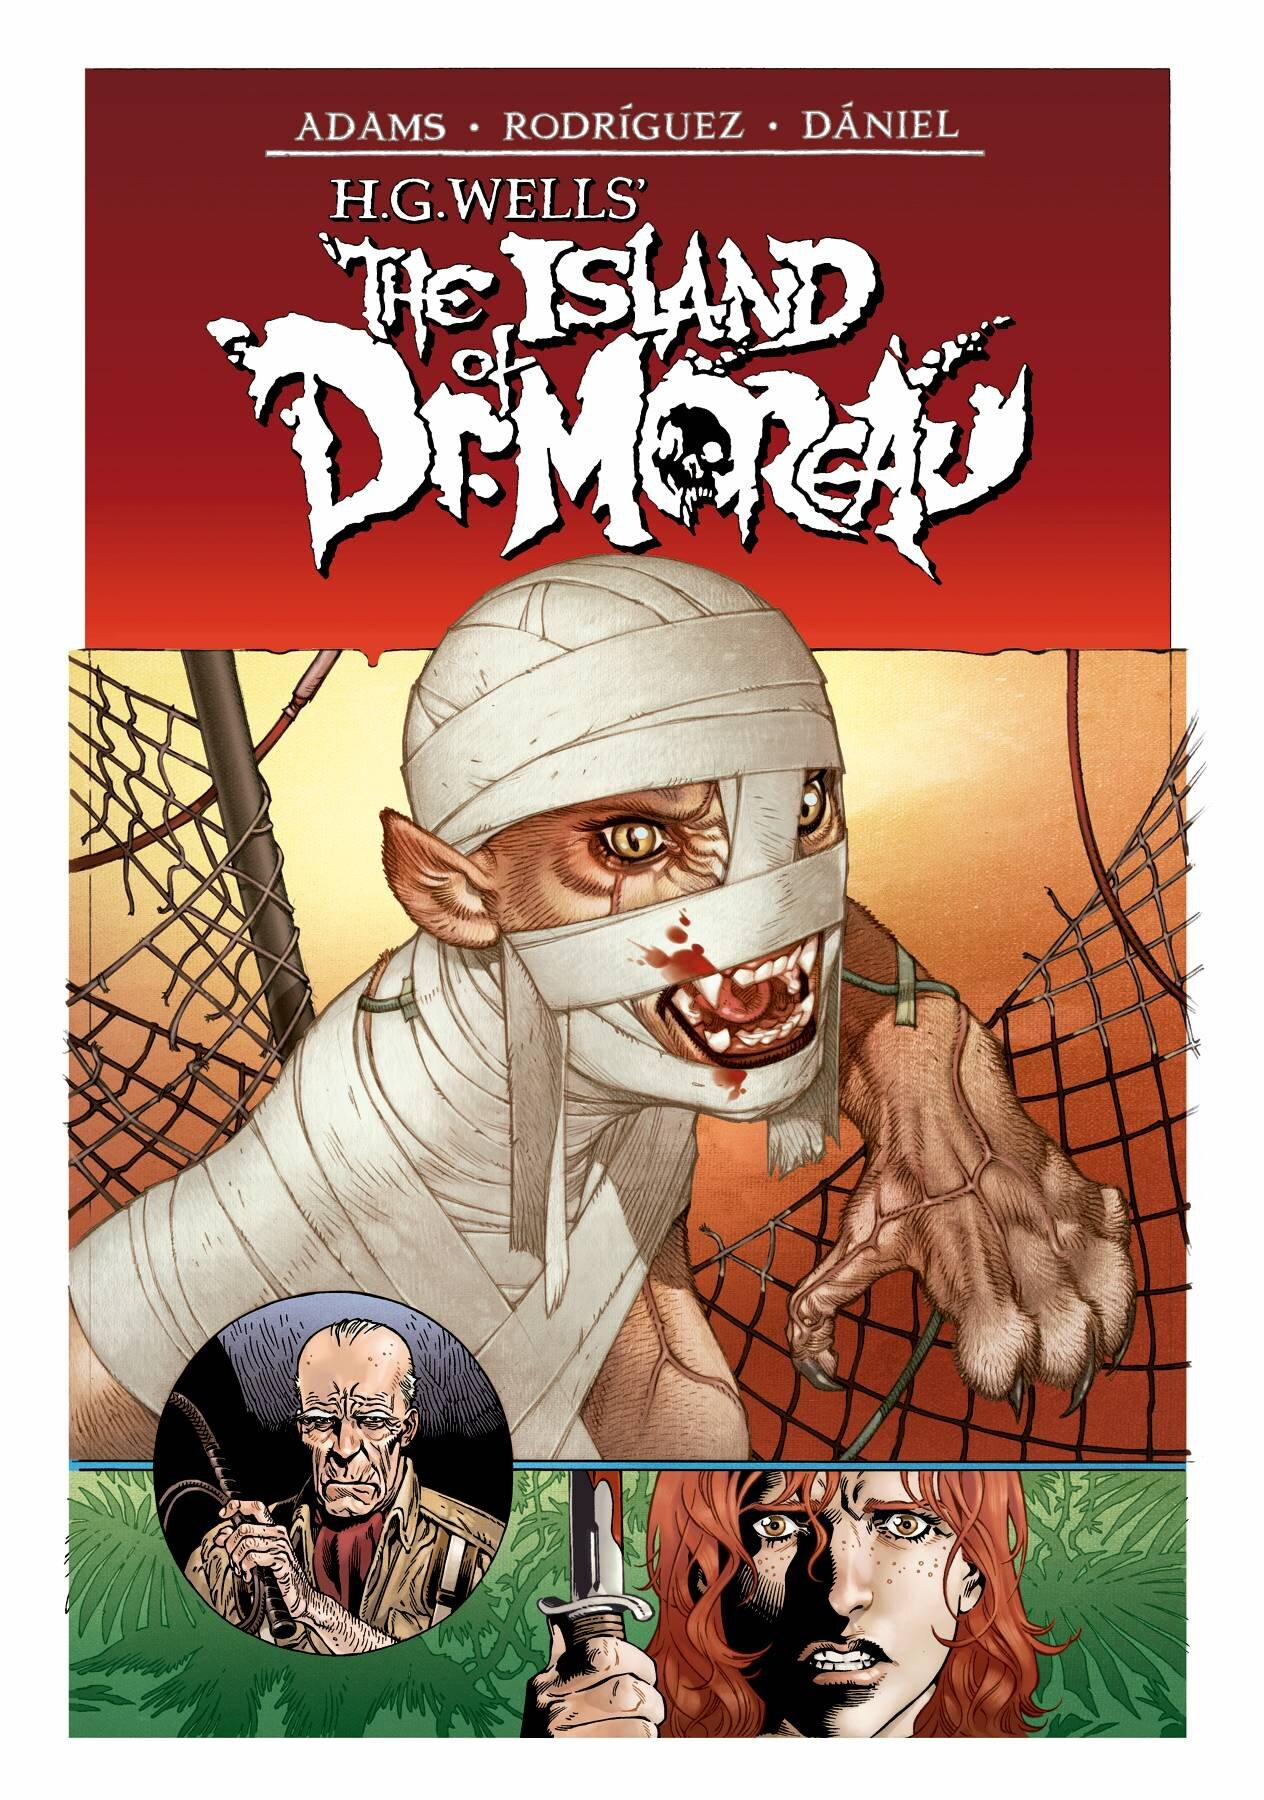 HG WELLS THE ISLAND OF DR MOREAU 2 of 2.jpg